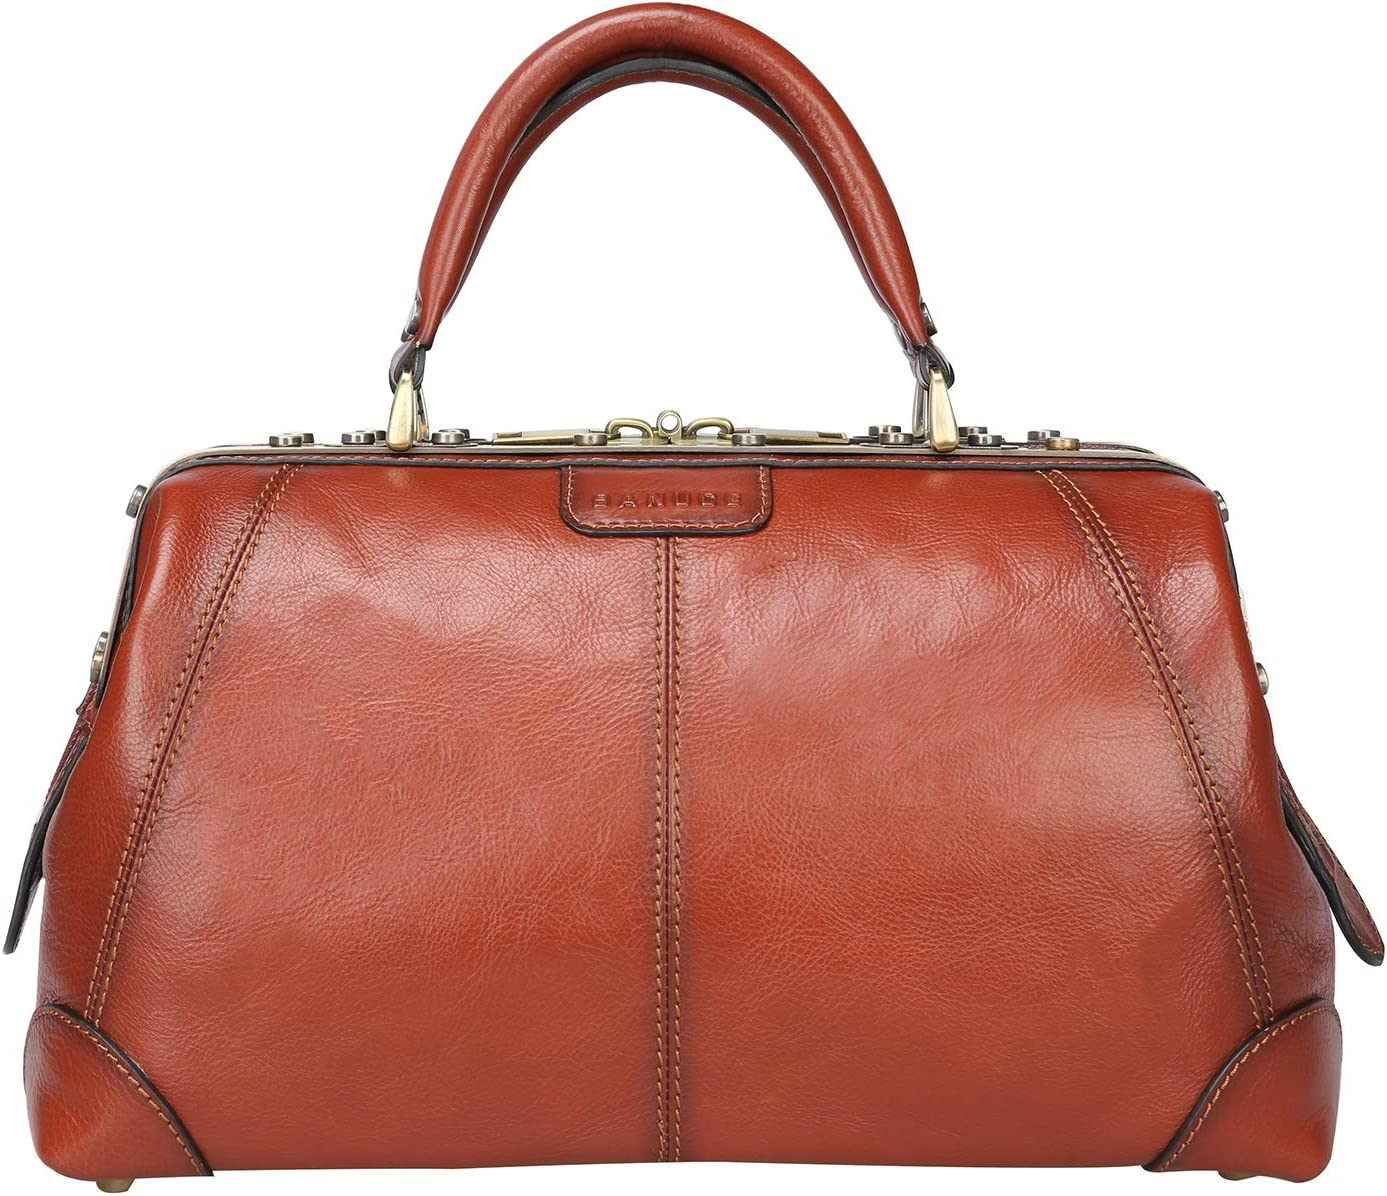 Edwardian Gloves, Handbags, Hair Combs, Wigs Banuce Vintage Full Grains Italian Leather Doctor Bag for Women Men Briefcase Business Handbag Medical Bag Purse $209.99 AT vintagedancer.com